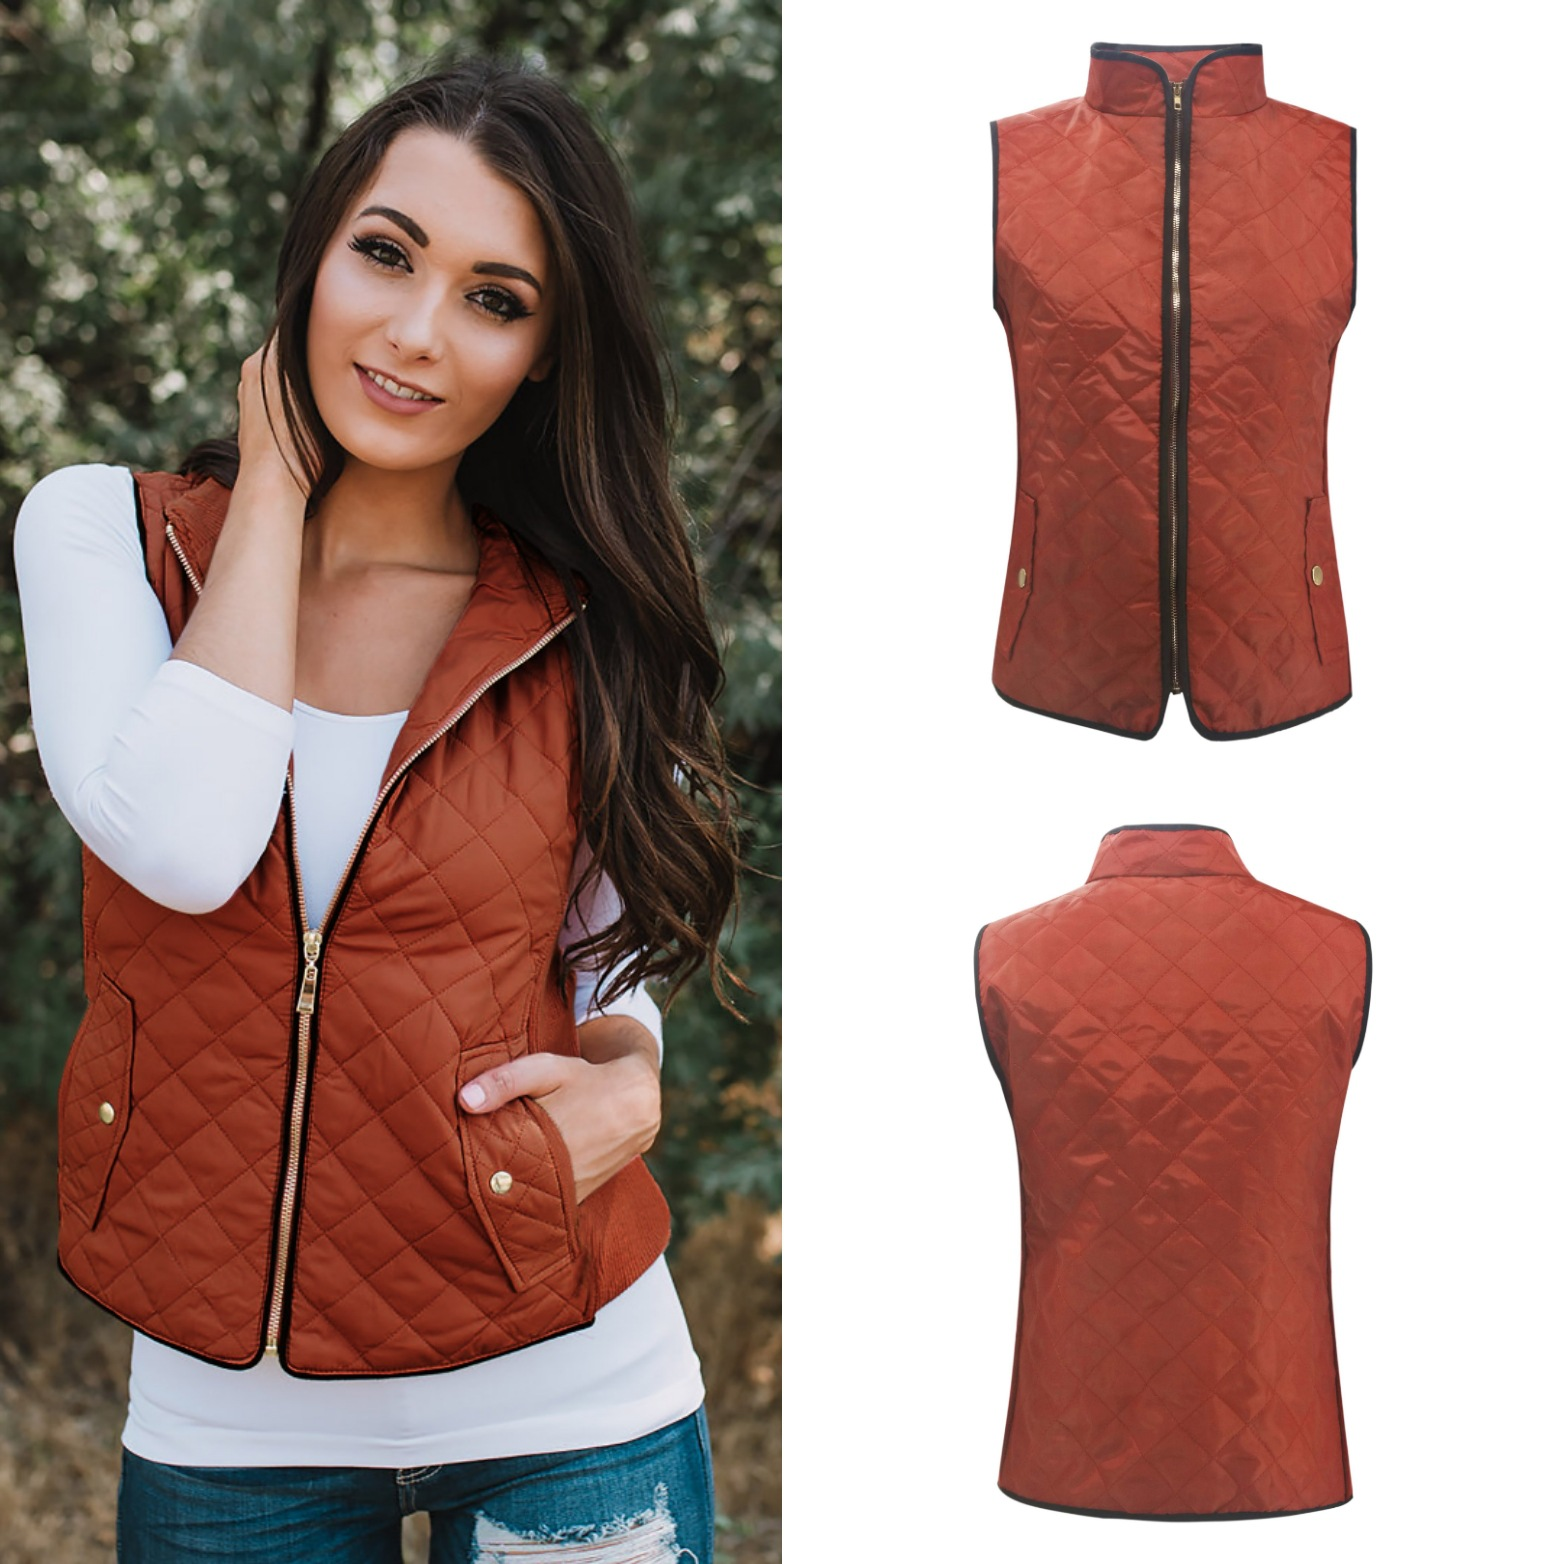 costume 2018 autumn and winter slim sheath basic woman vests casual solid pockets zippers v neck cute fashionsexy female vests